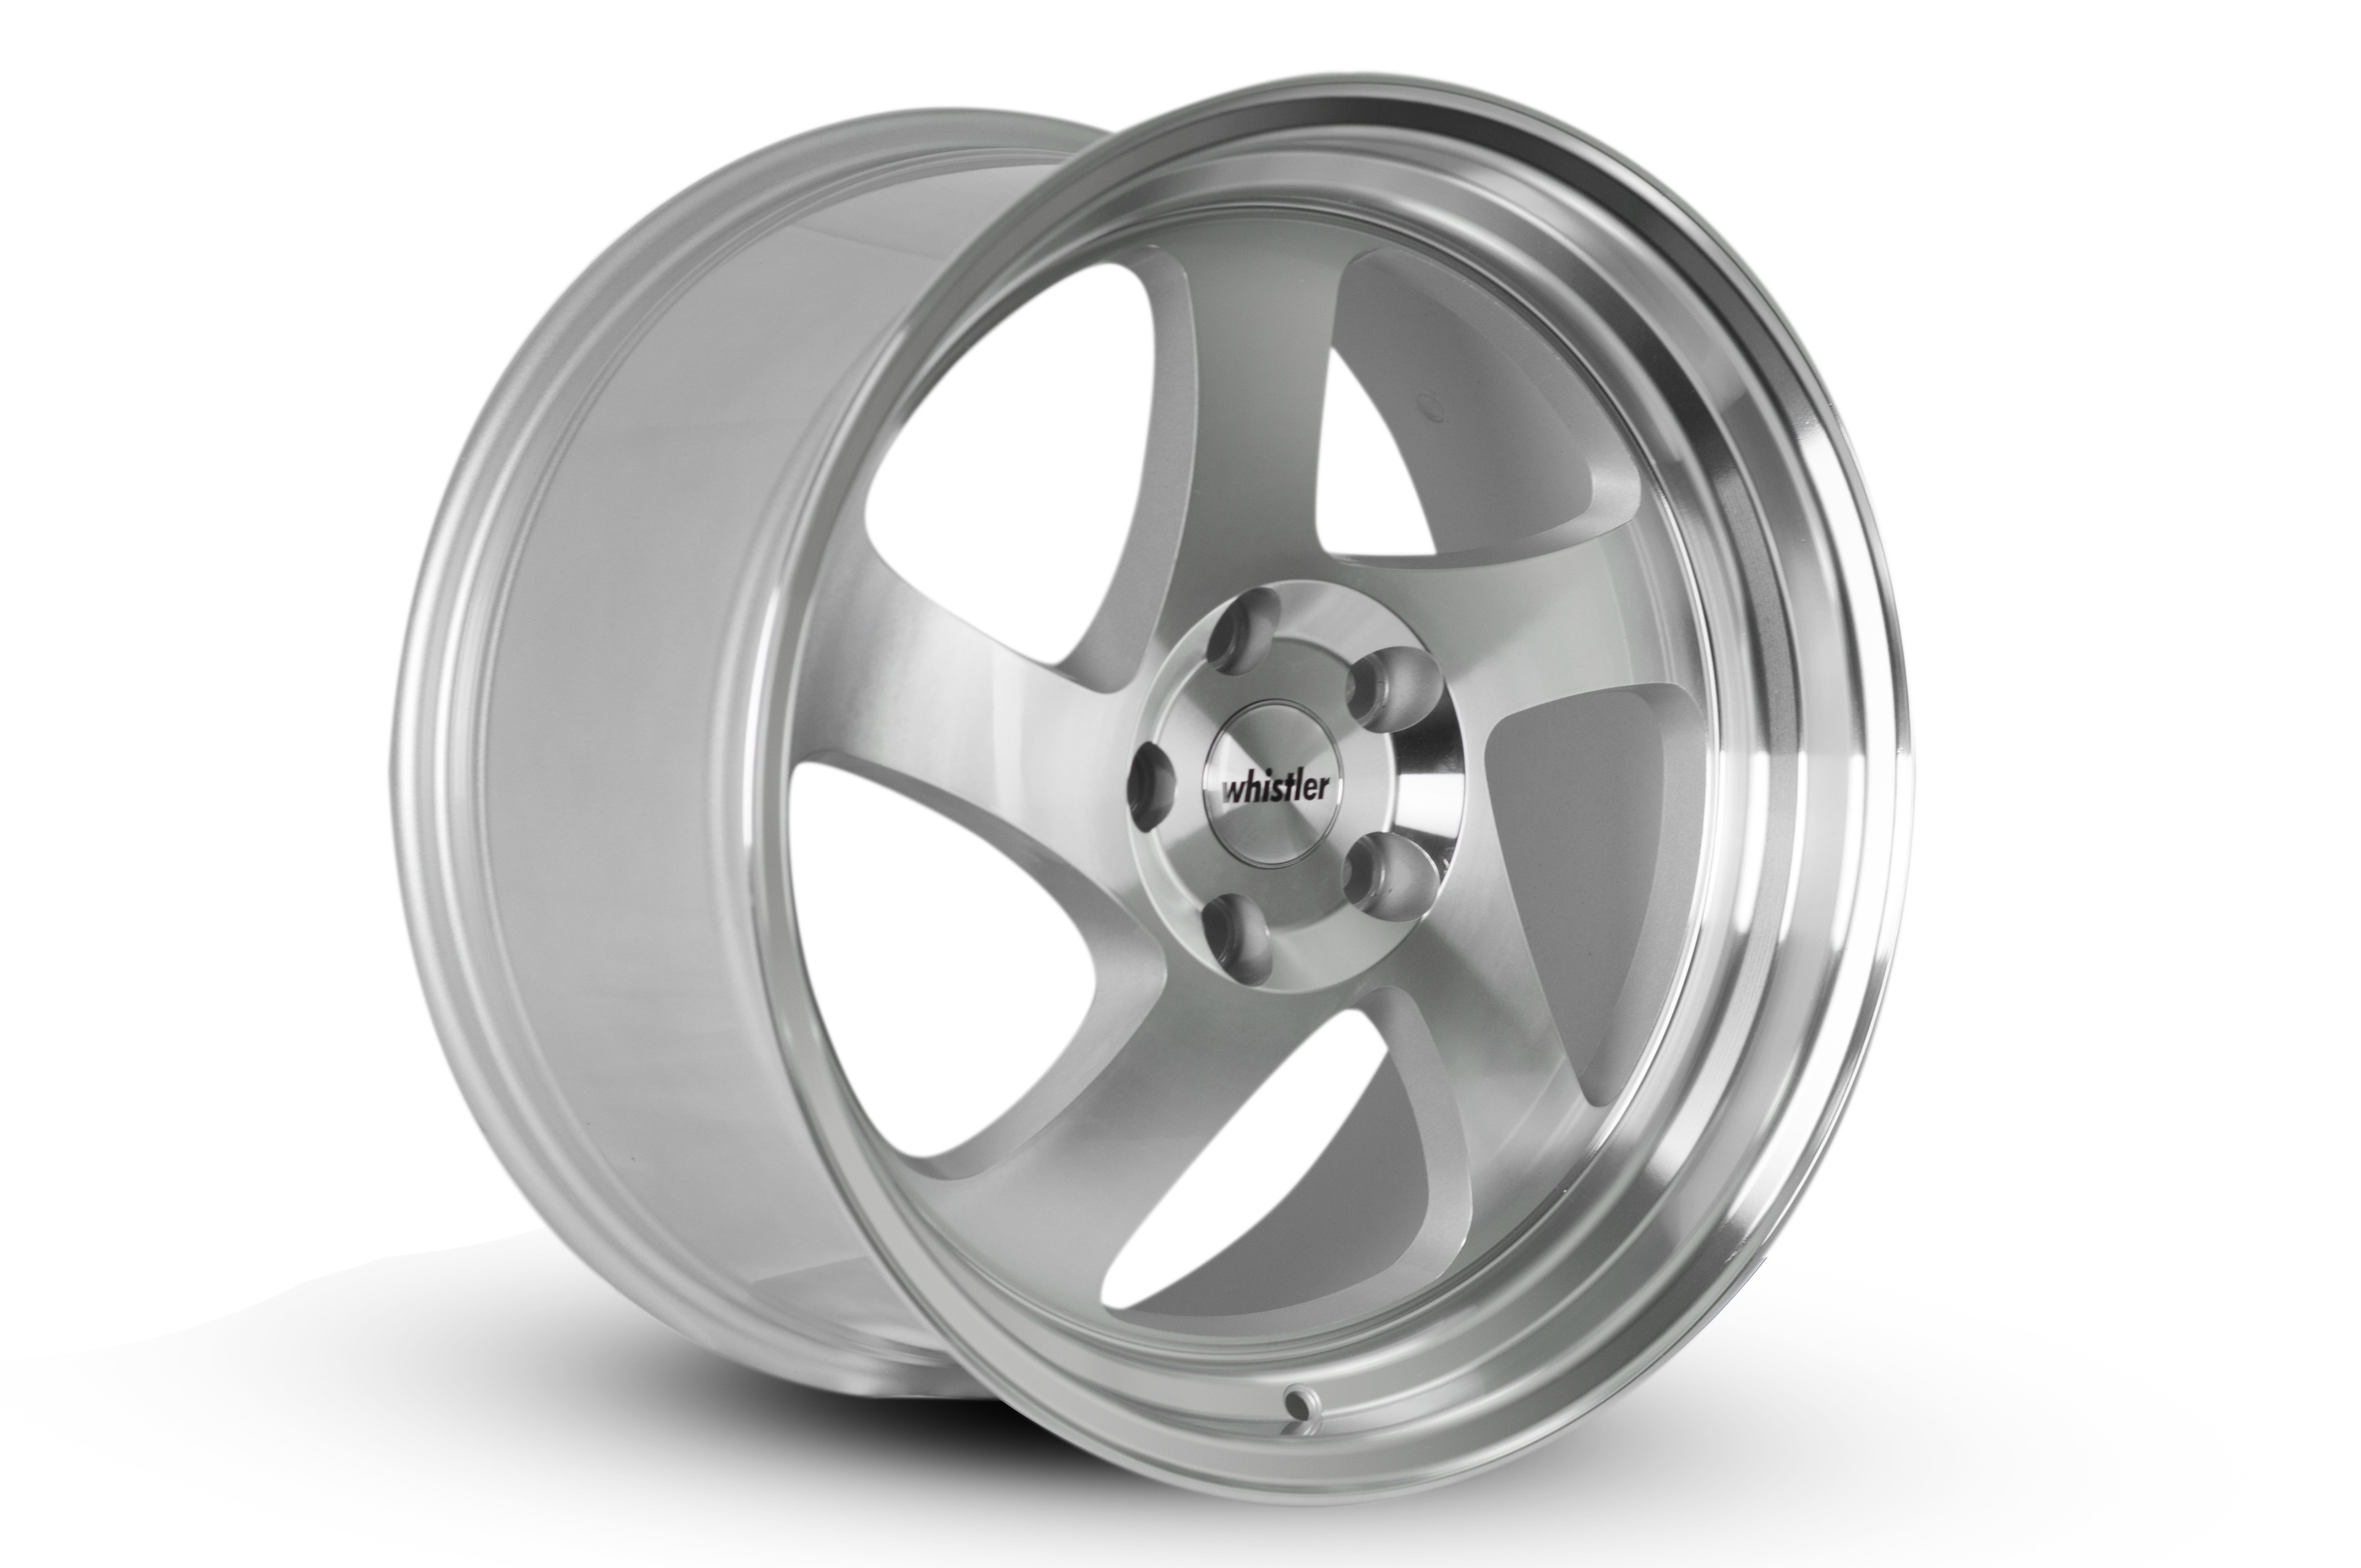 Whistler Wheels 16x8 KR1 Silver with Machined Face: +20mm